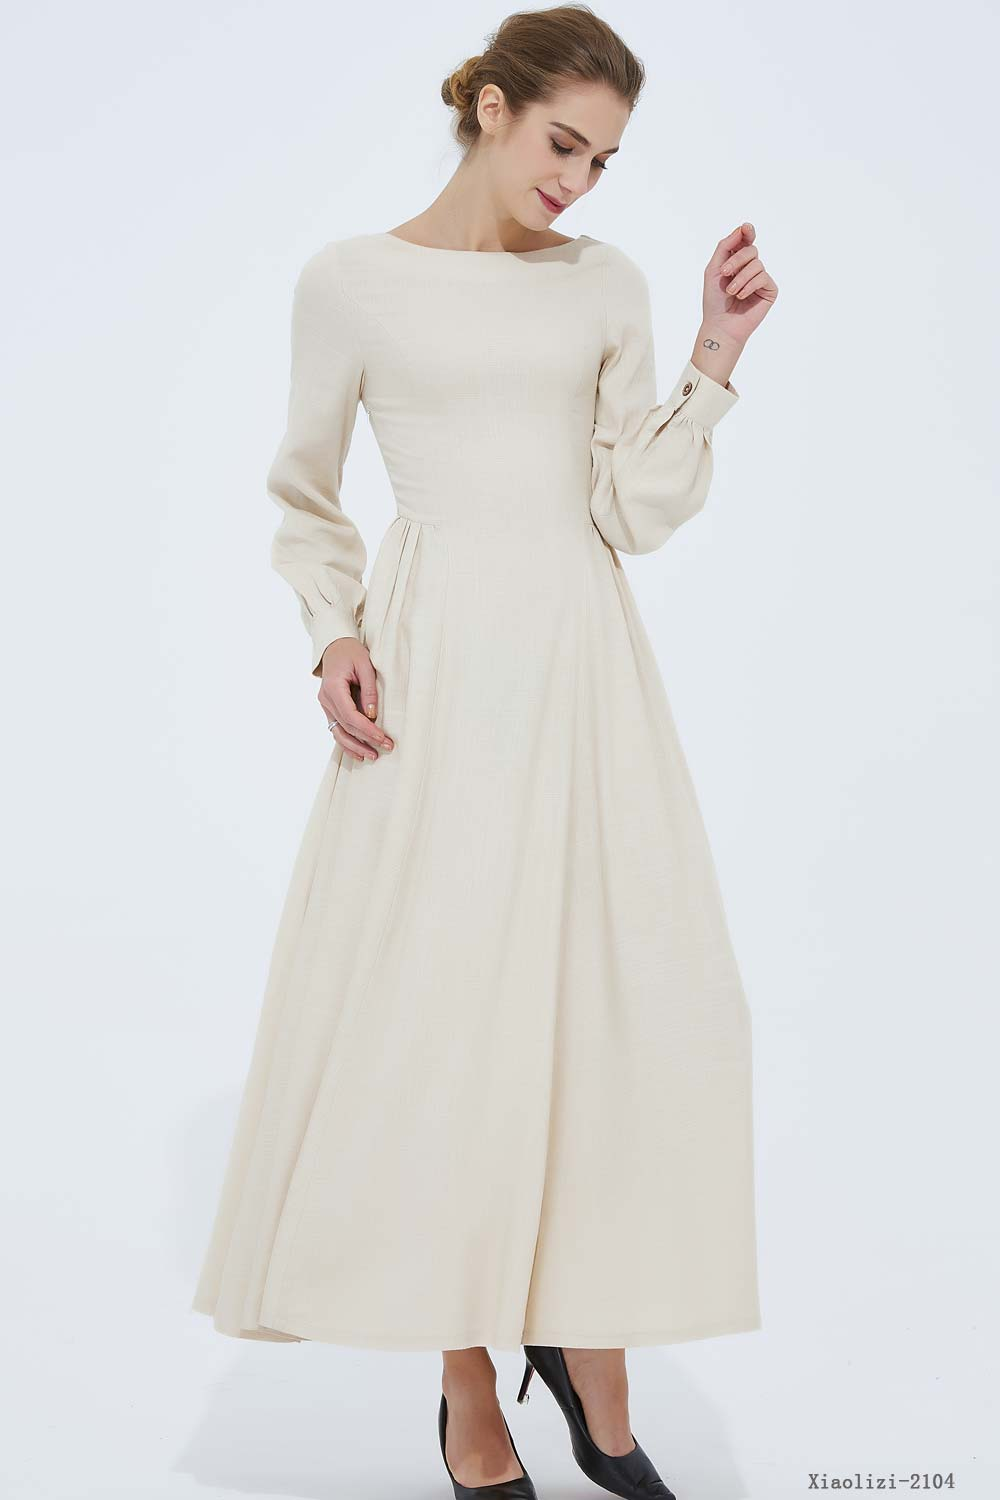 long sleeve swing prom dress in beige 2104#